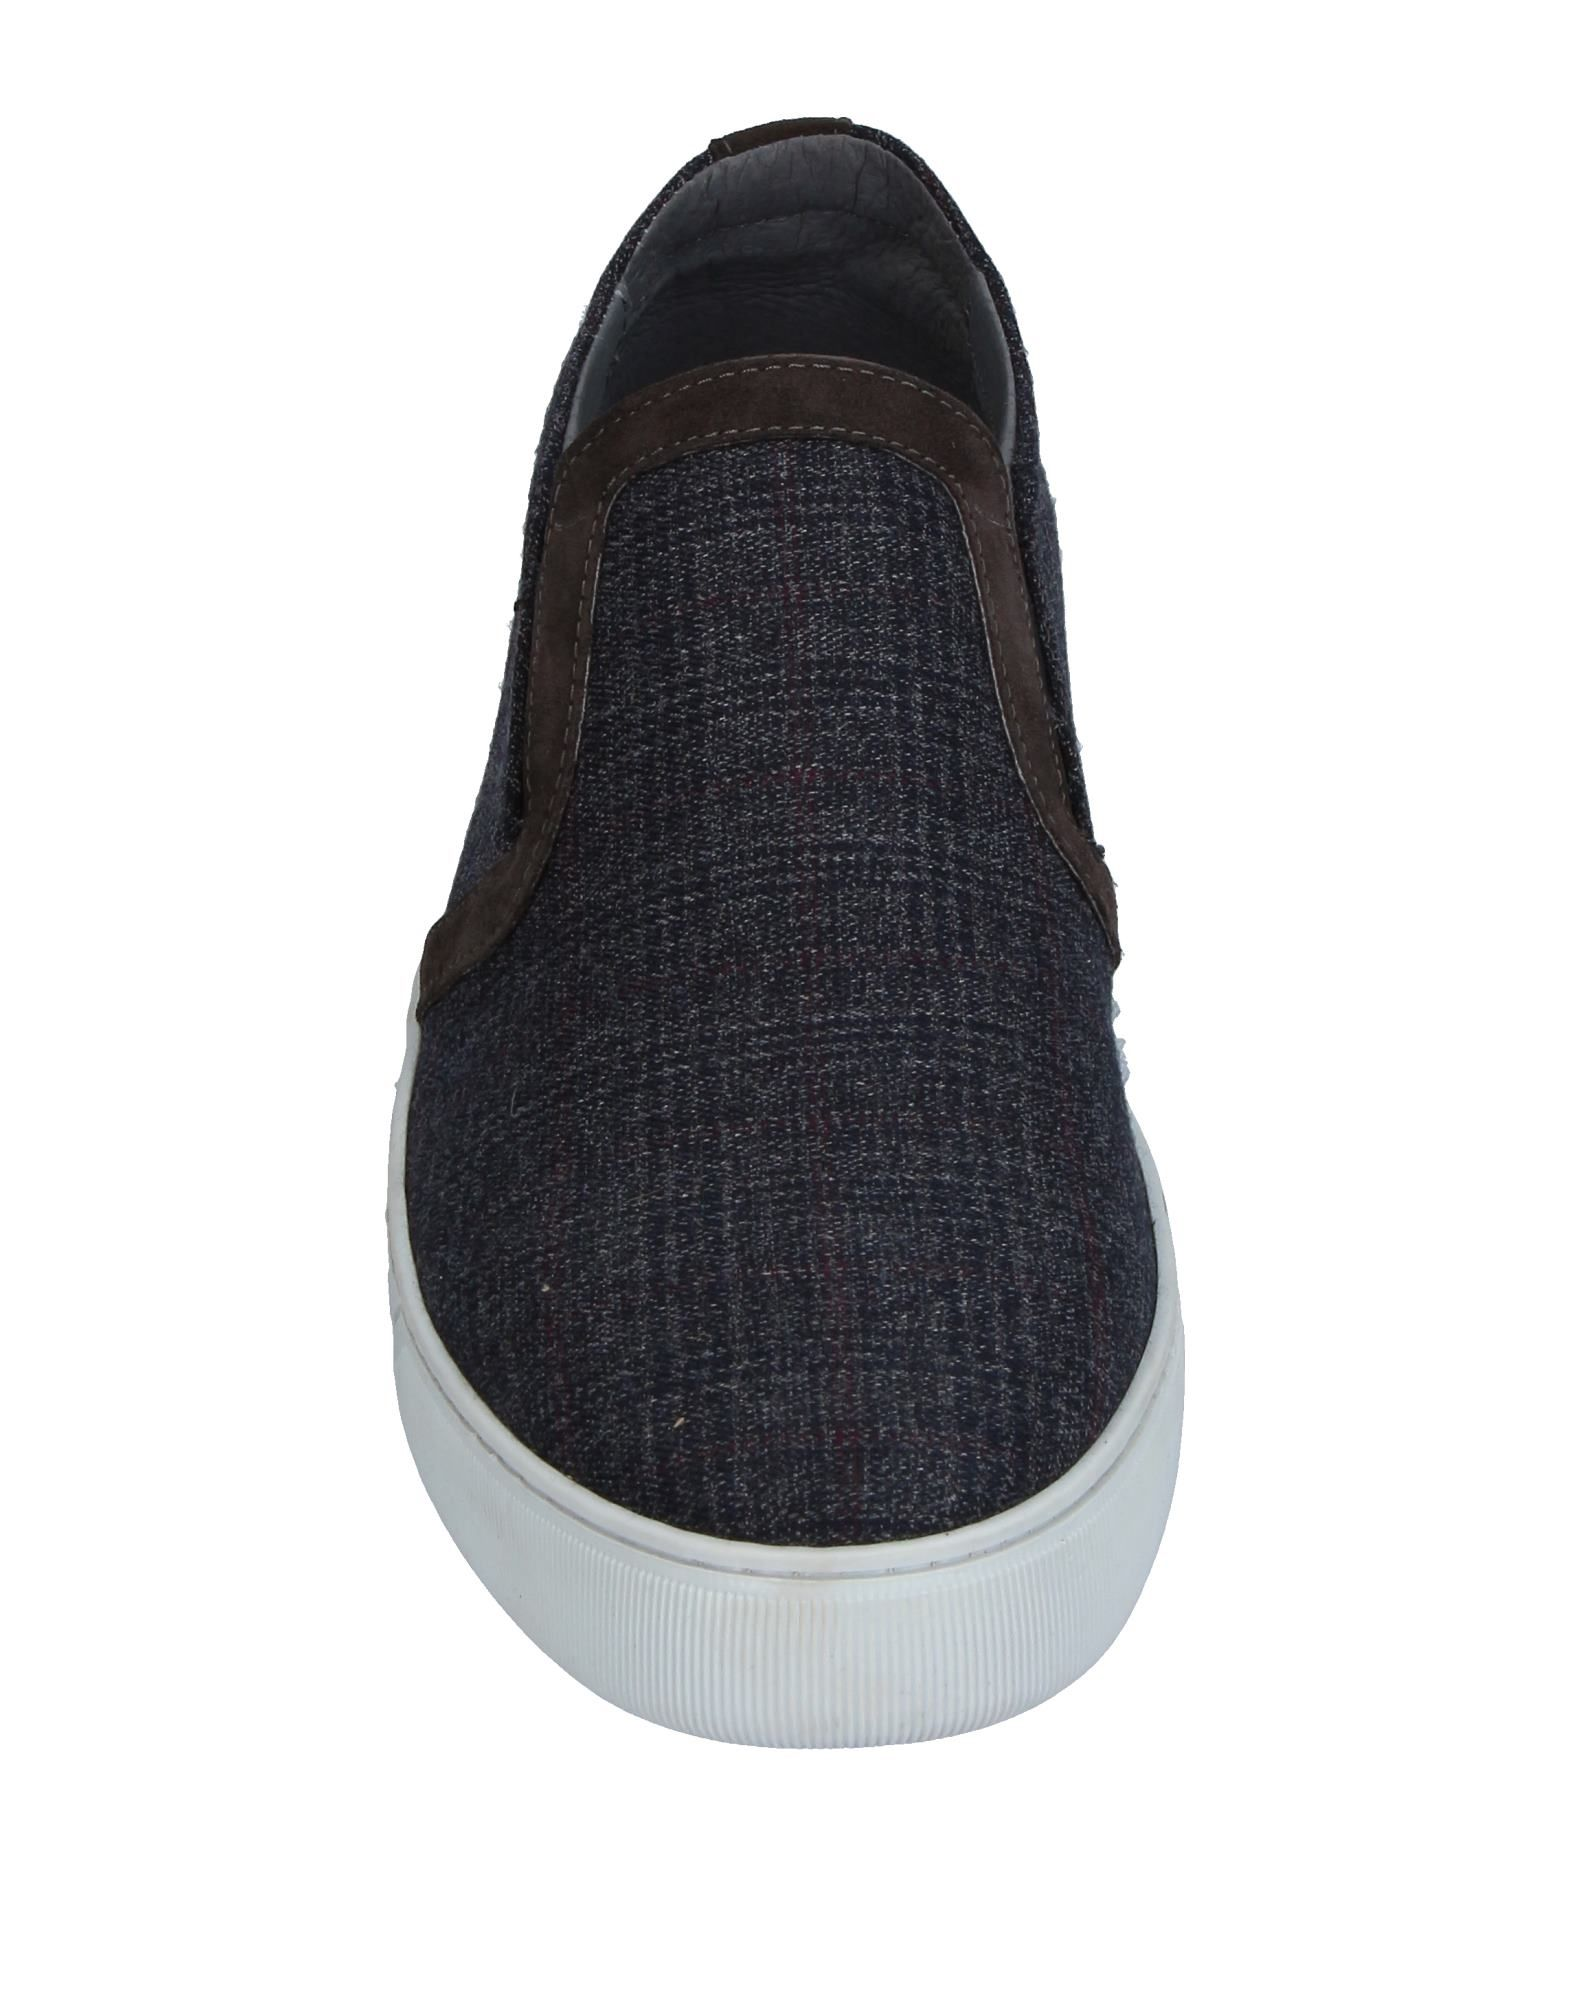 Sneakers At.P.Co Homme - Sneakers At.P.Co sur